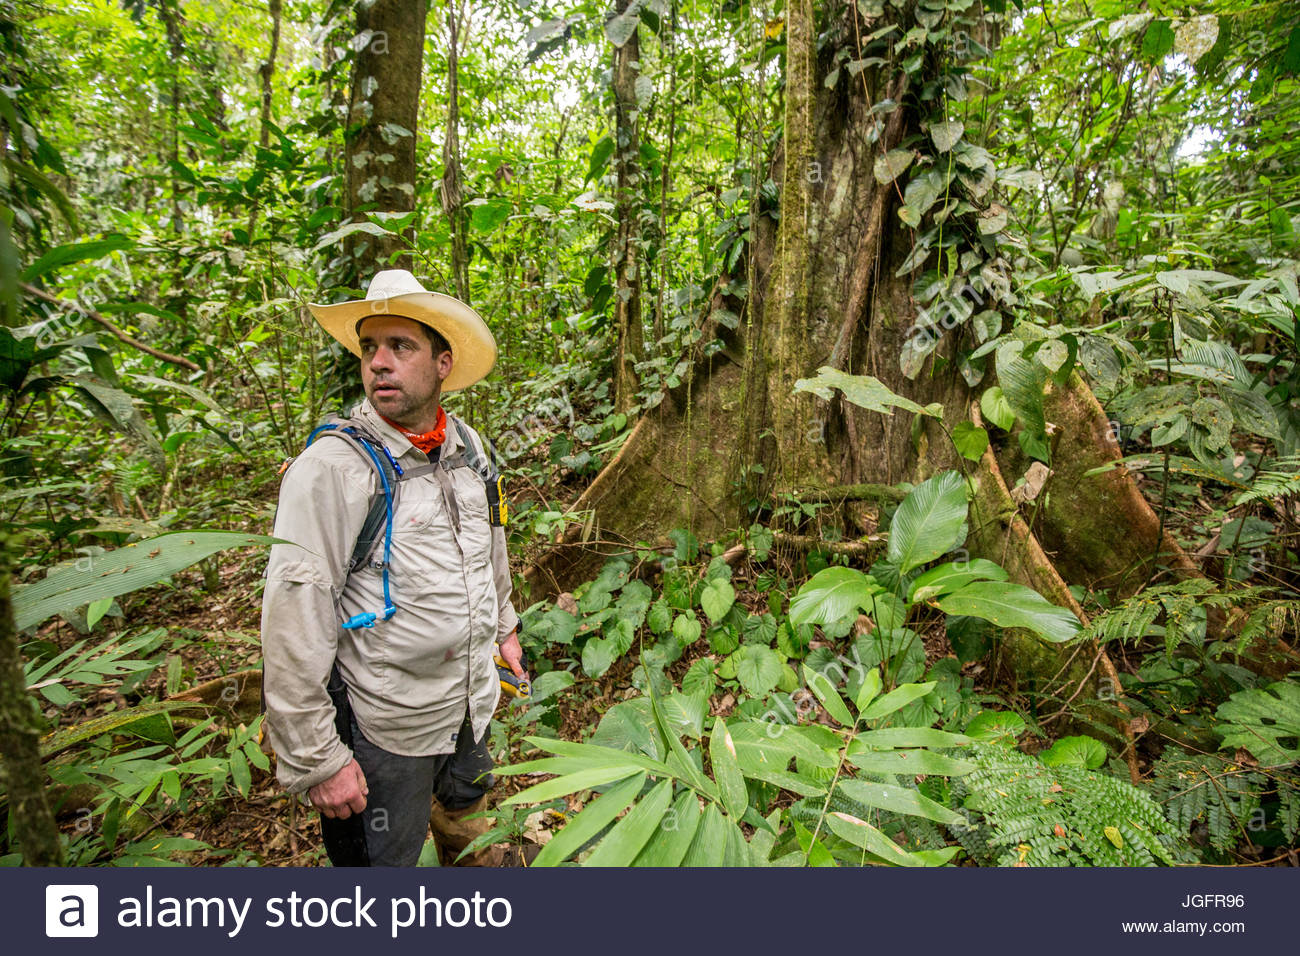 An archeologist explores the Mosquitia jungle in search of evidence of an ancient civilization. - Stock Image